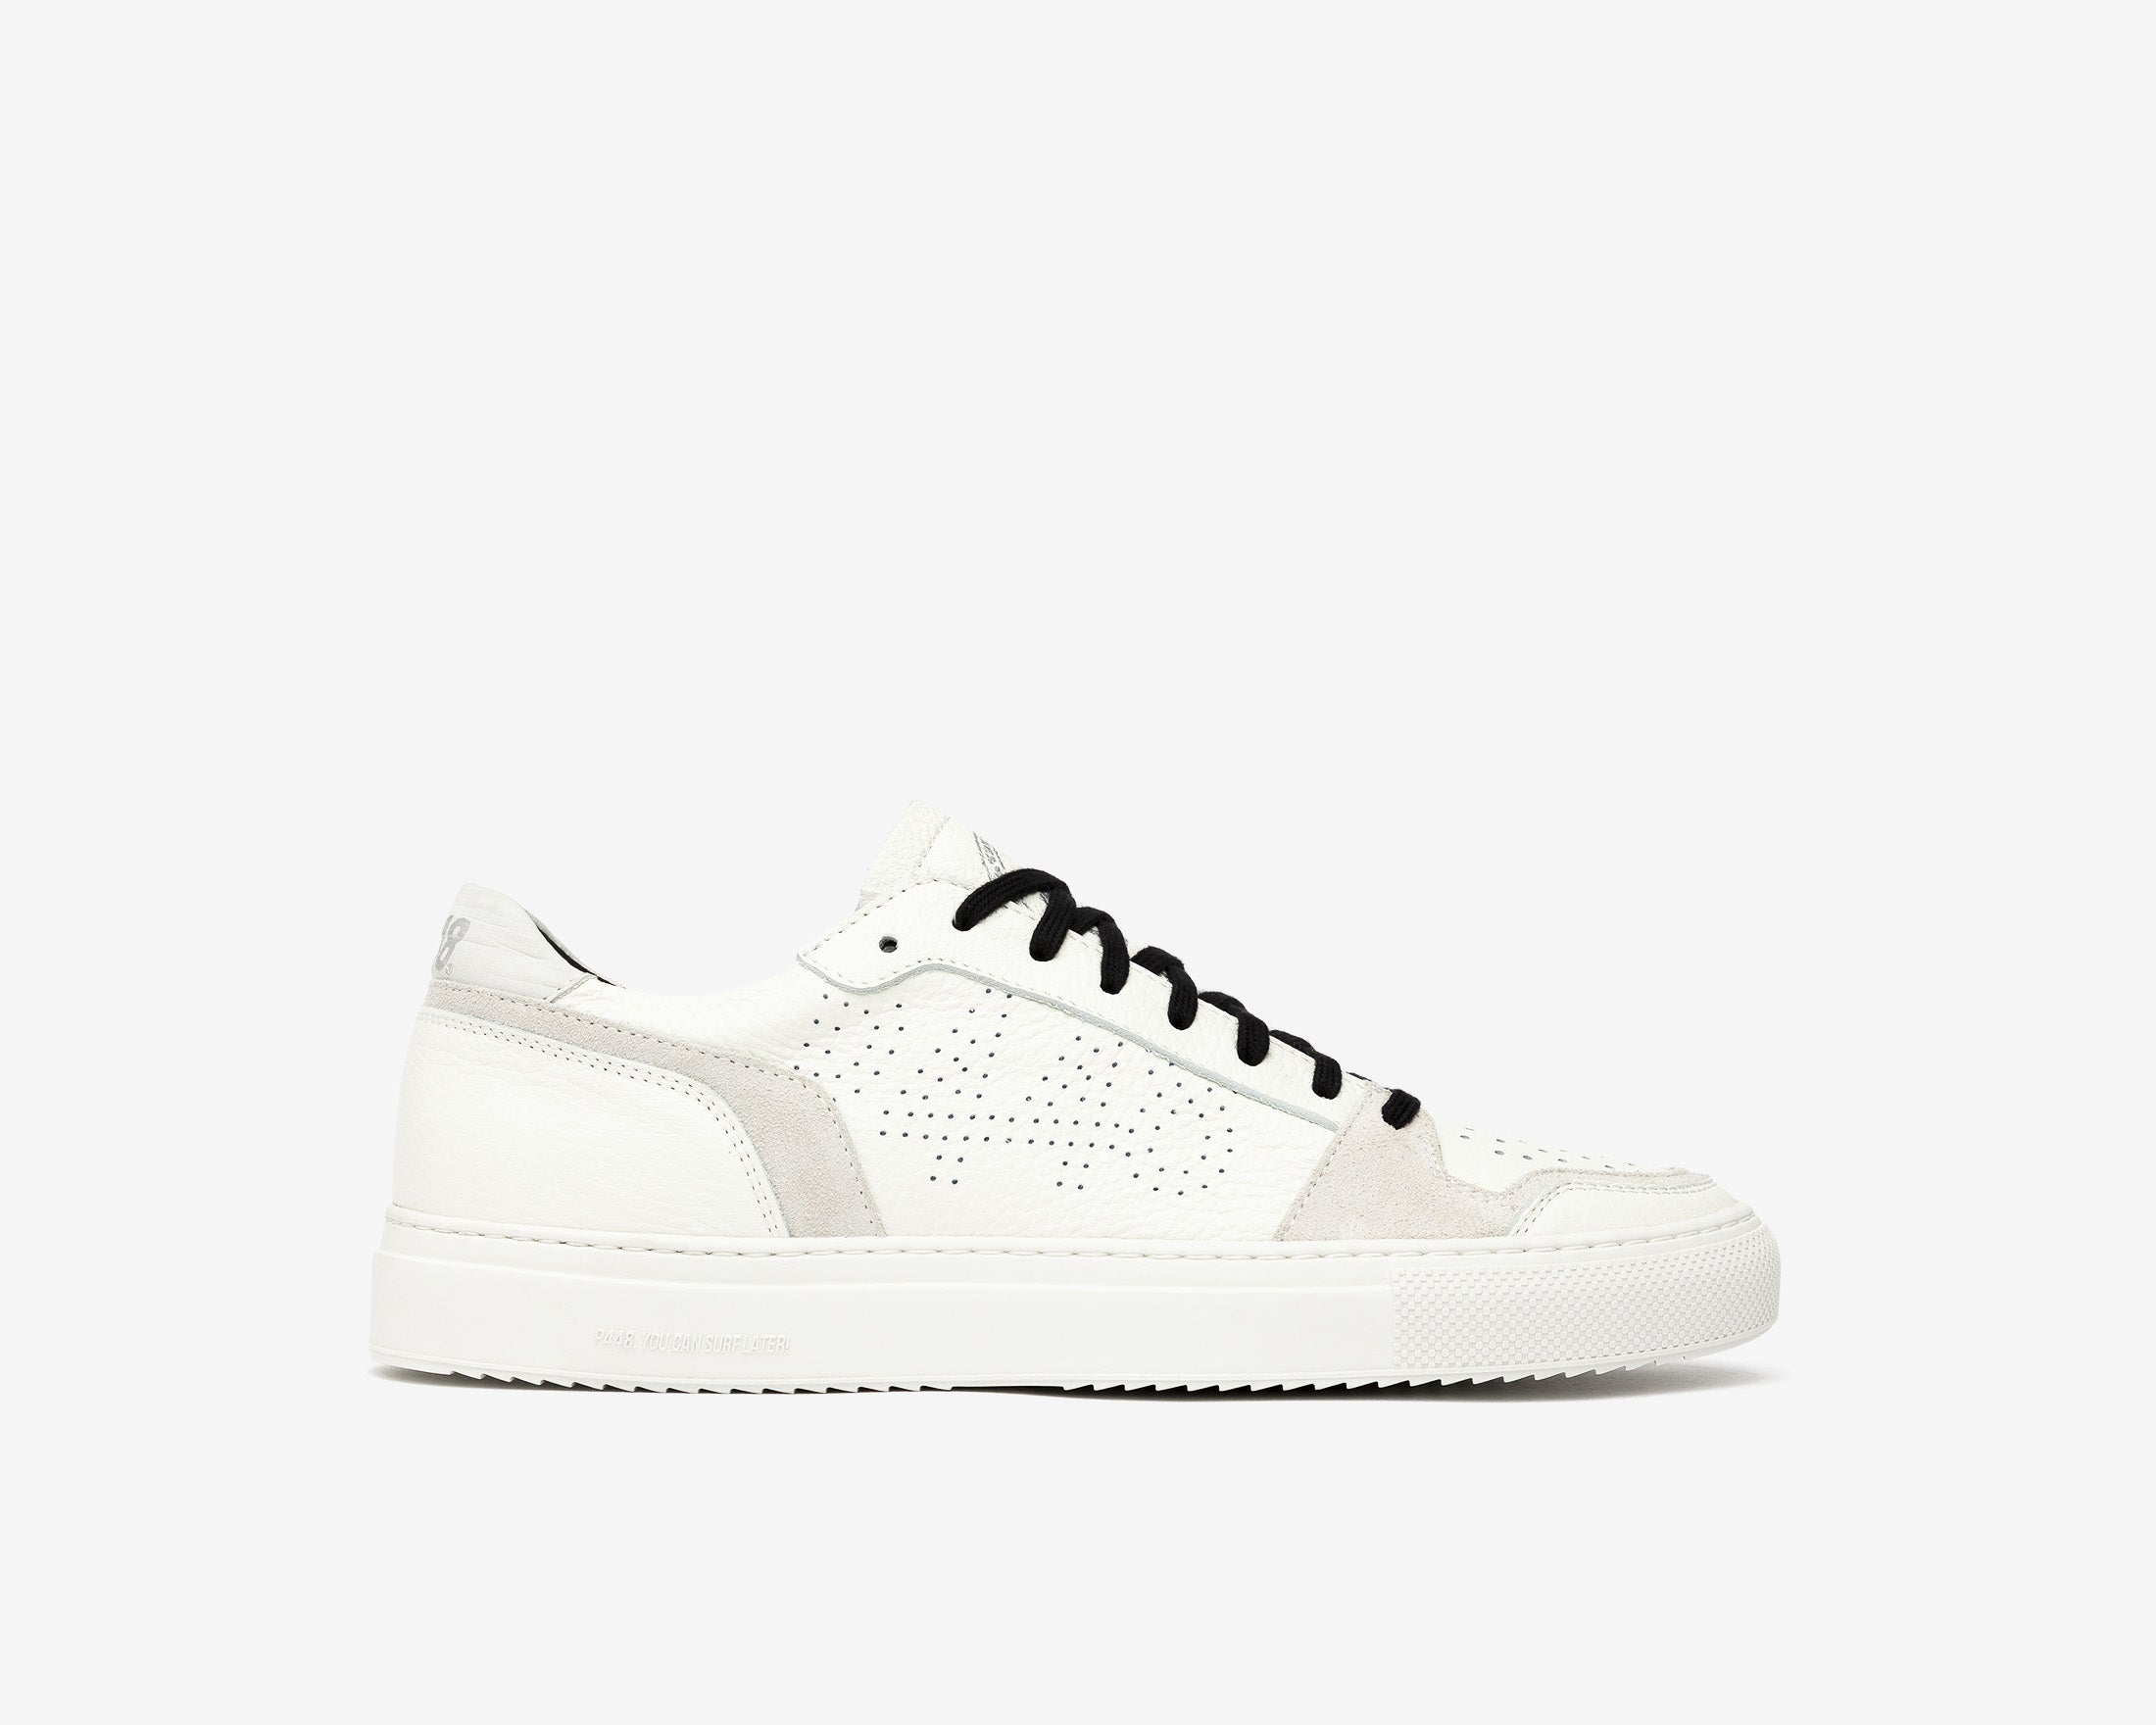 Zac Low-Top Sneaker in White/Spez - Profile